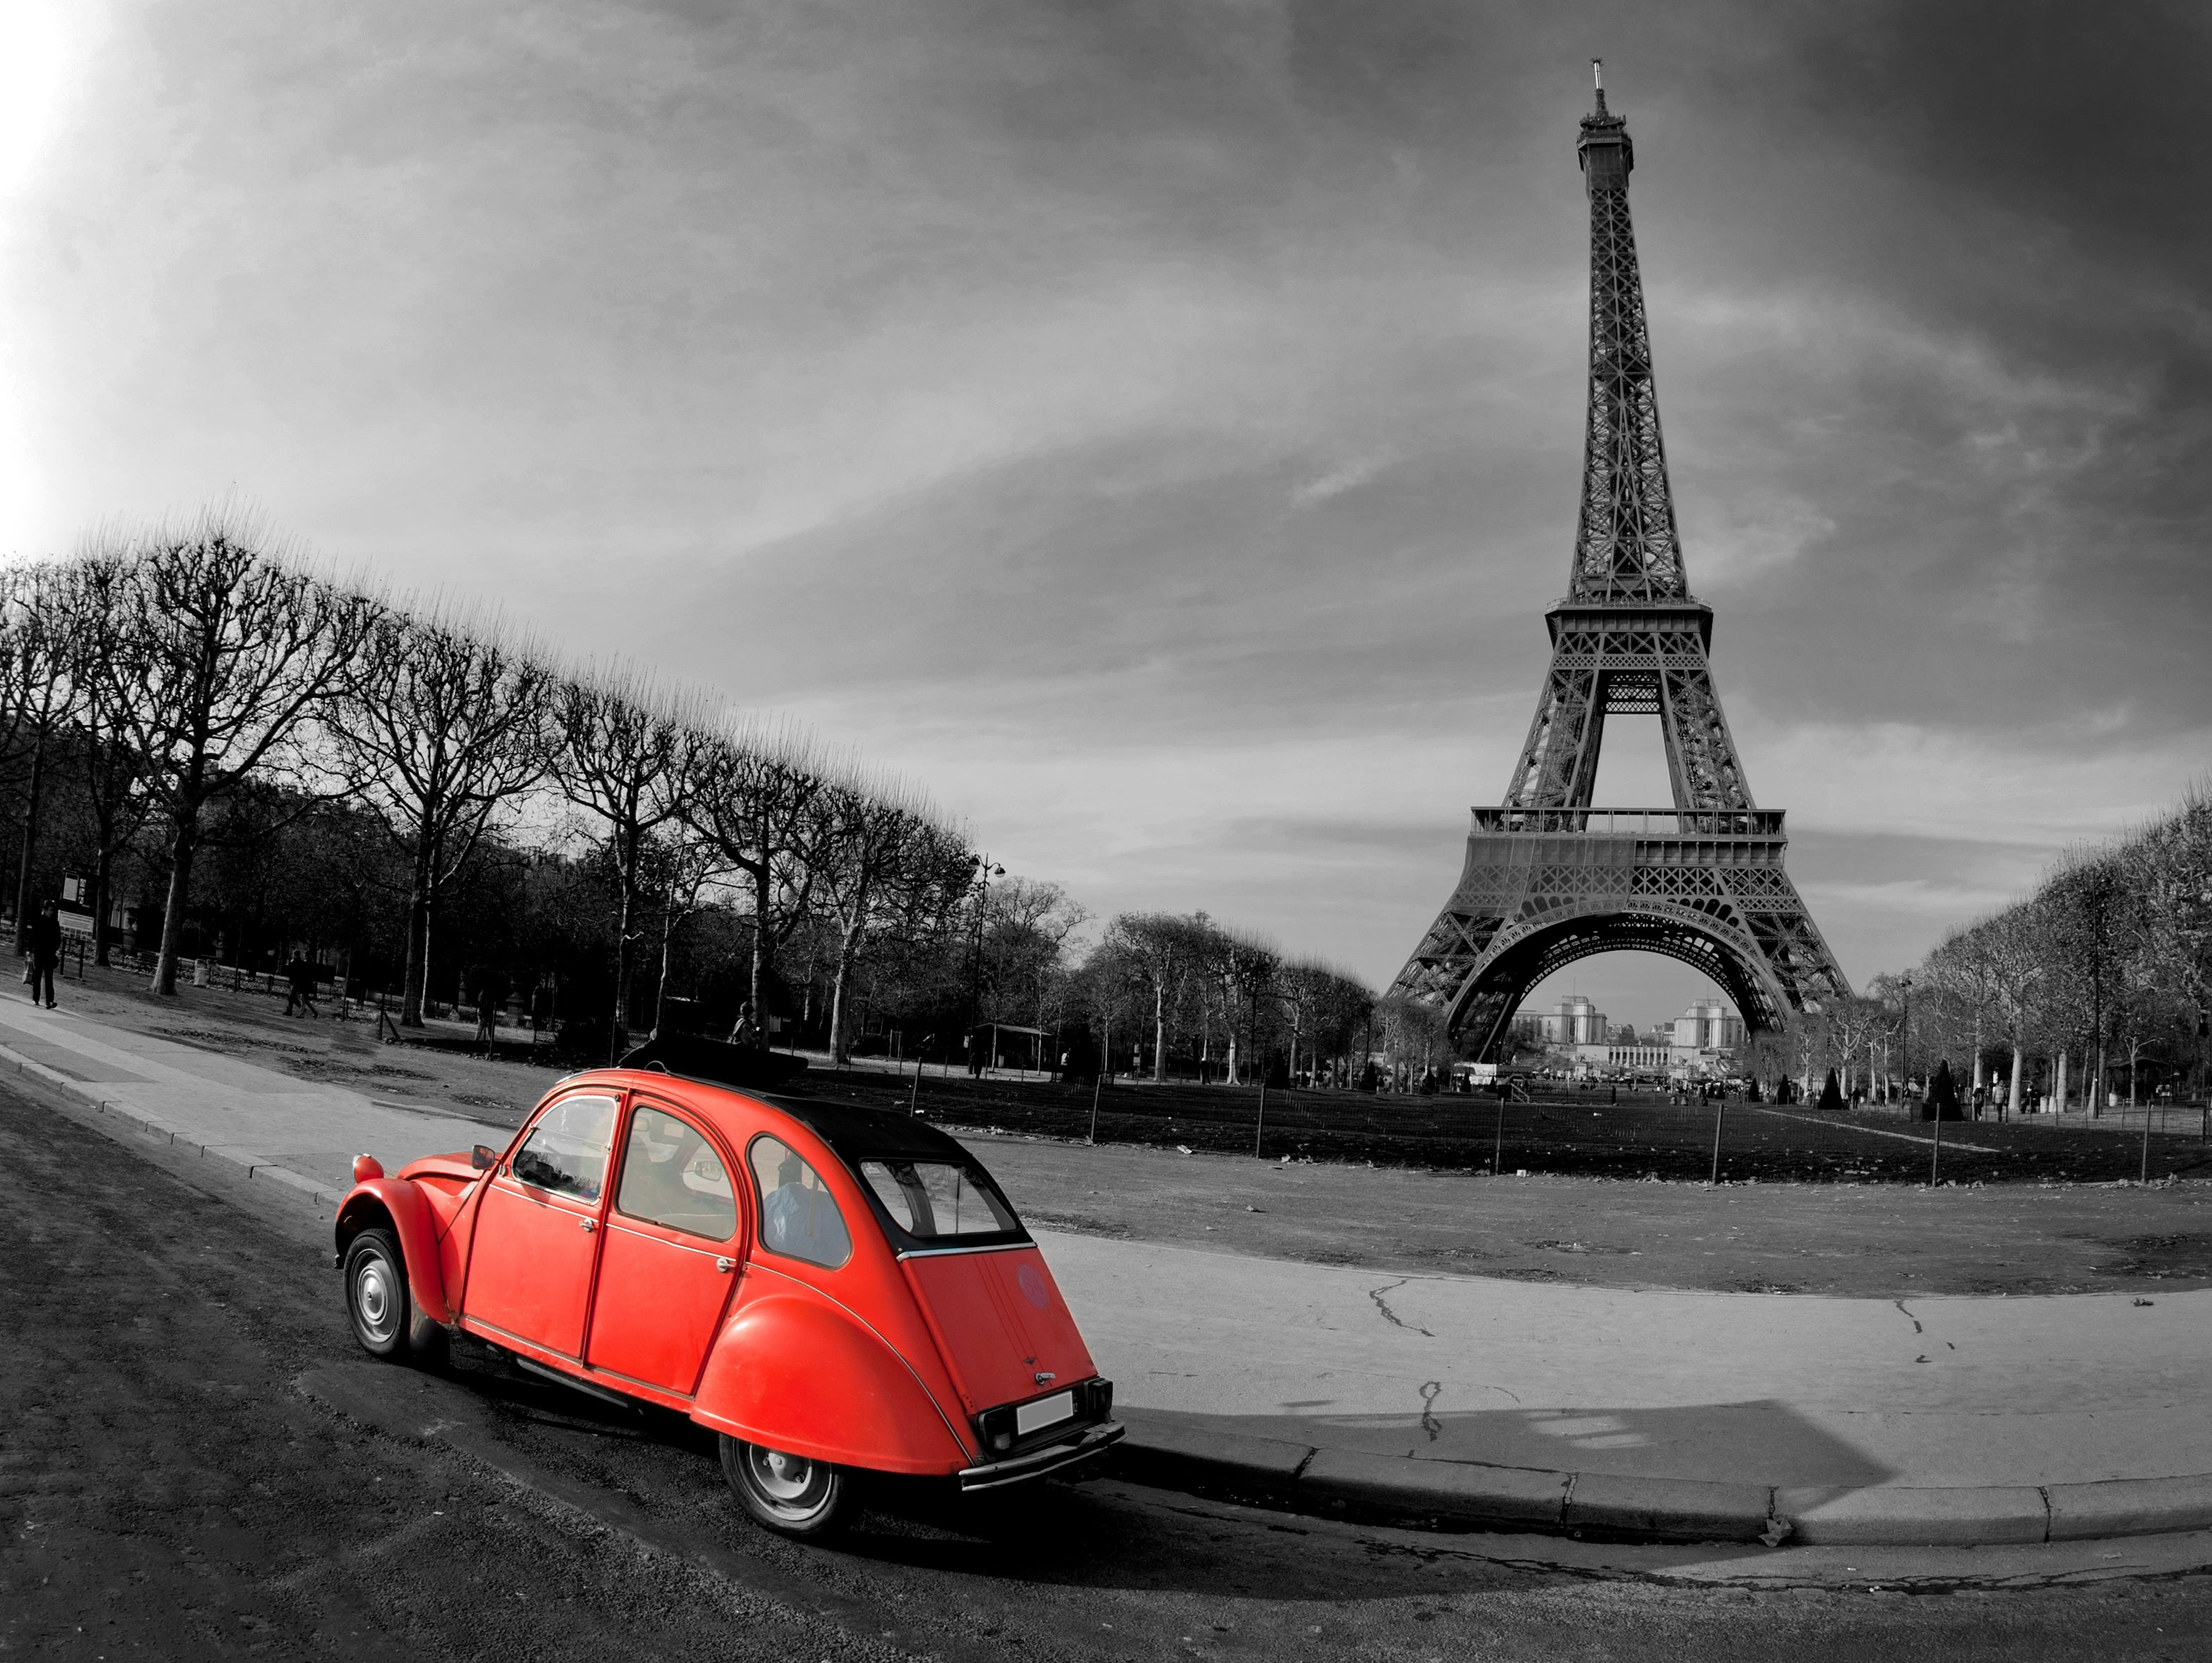 Eiffel Tower and red car in Paris